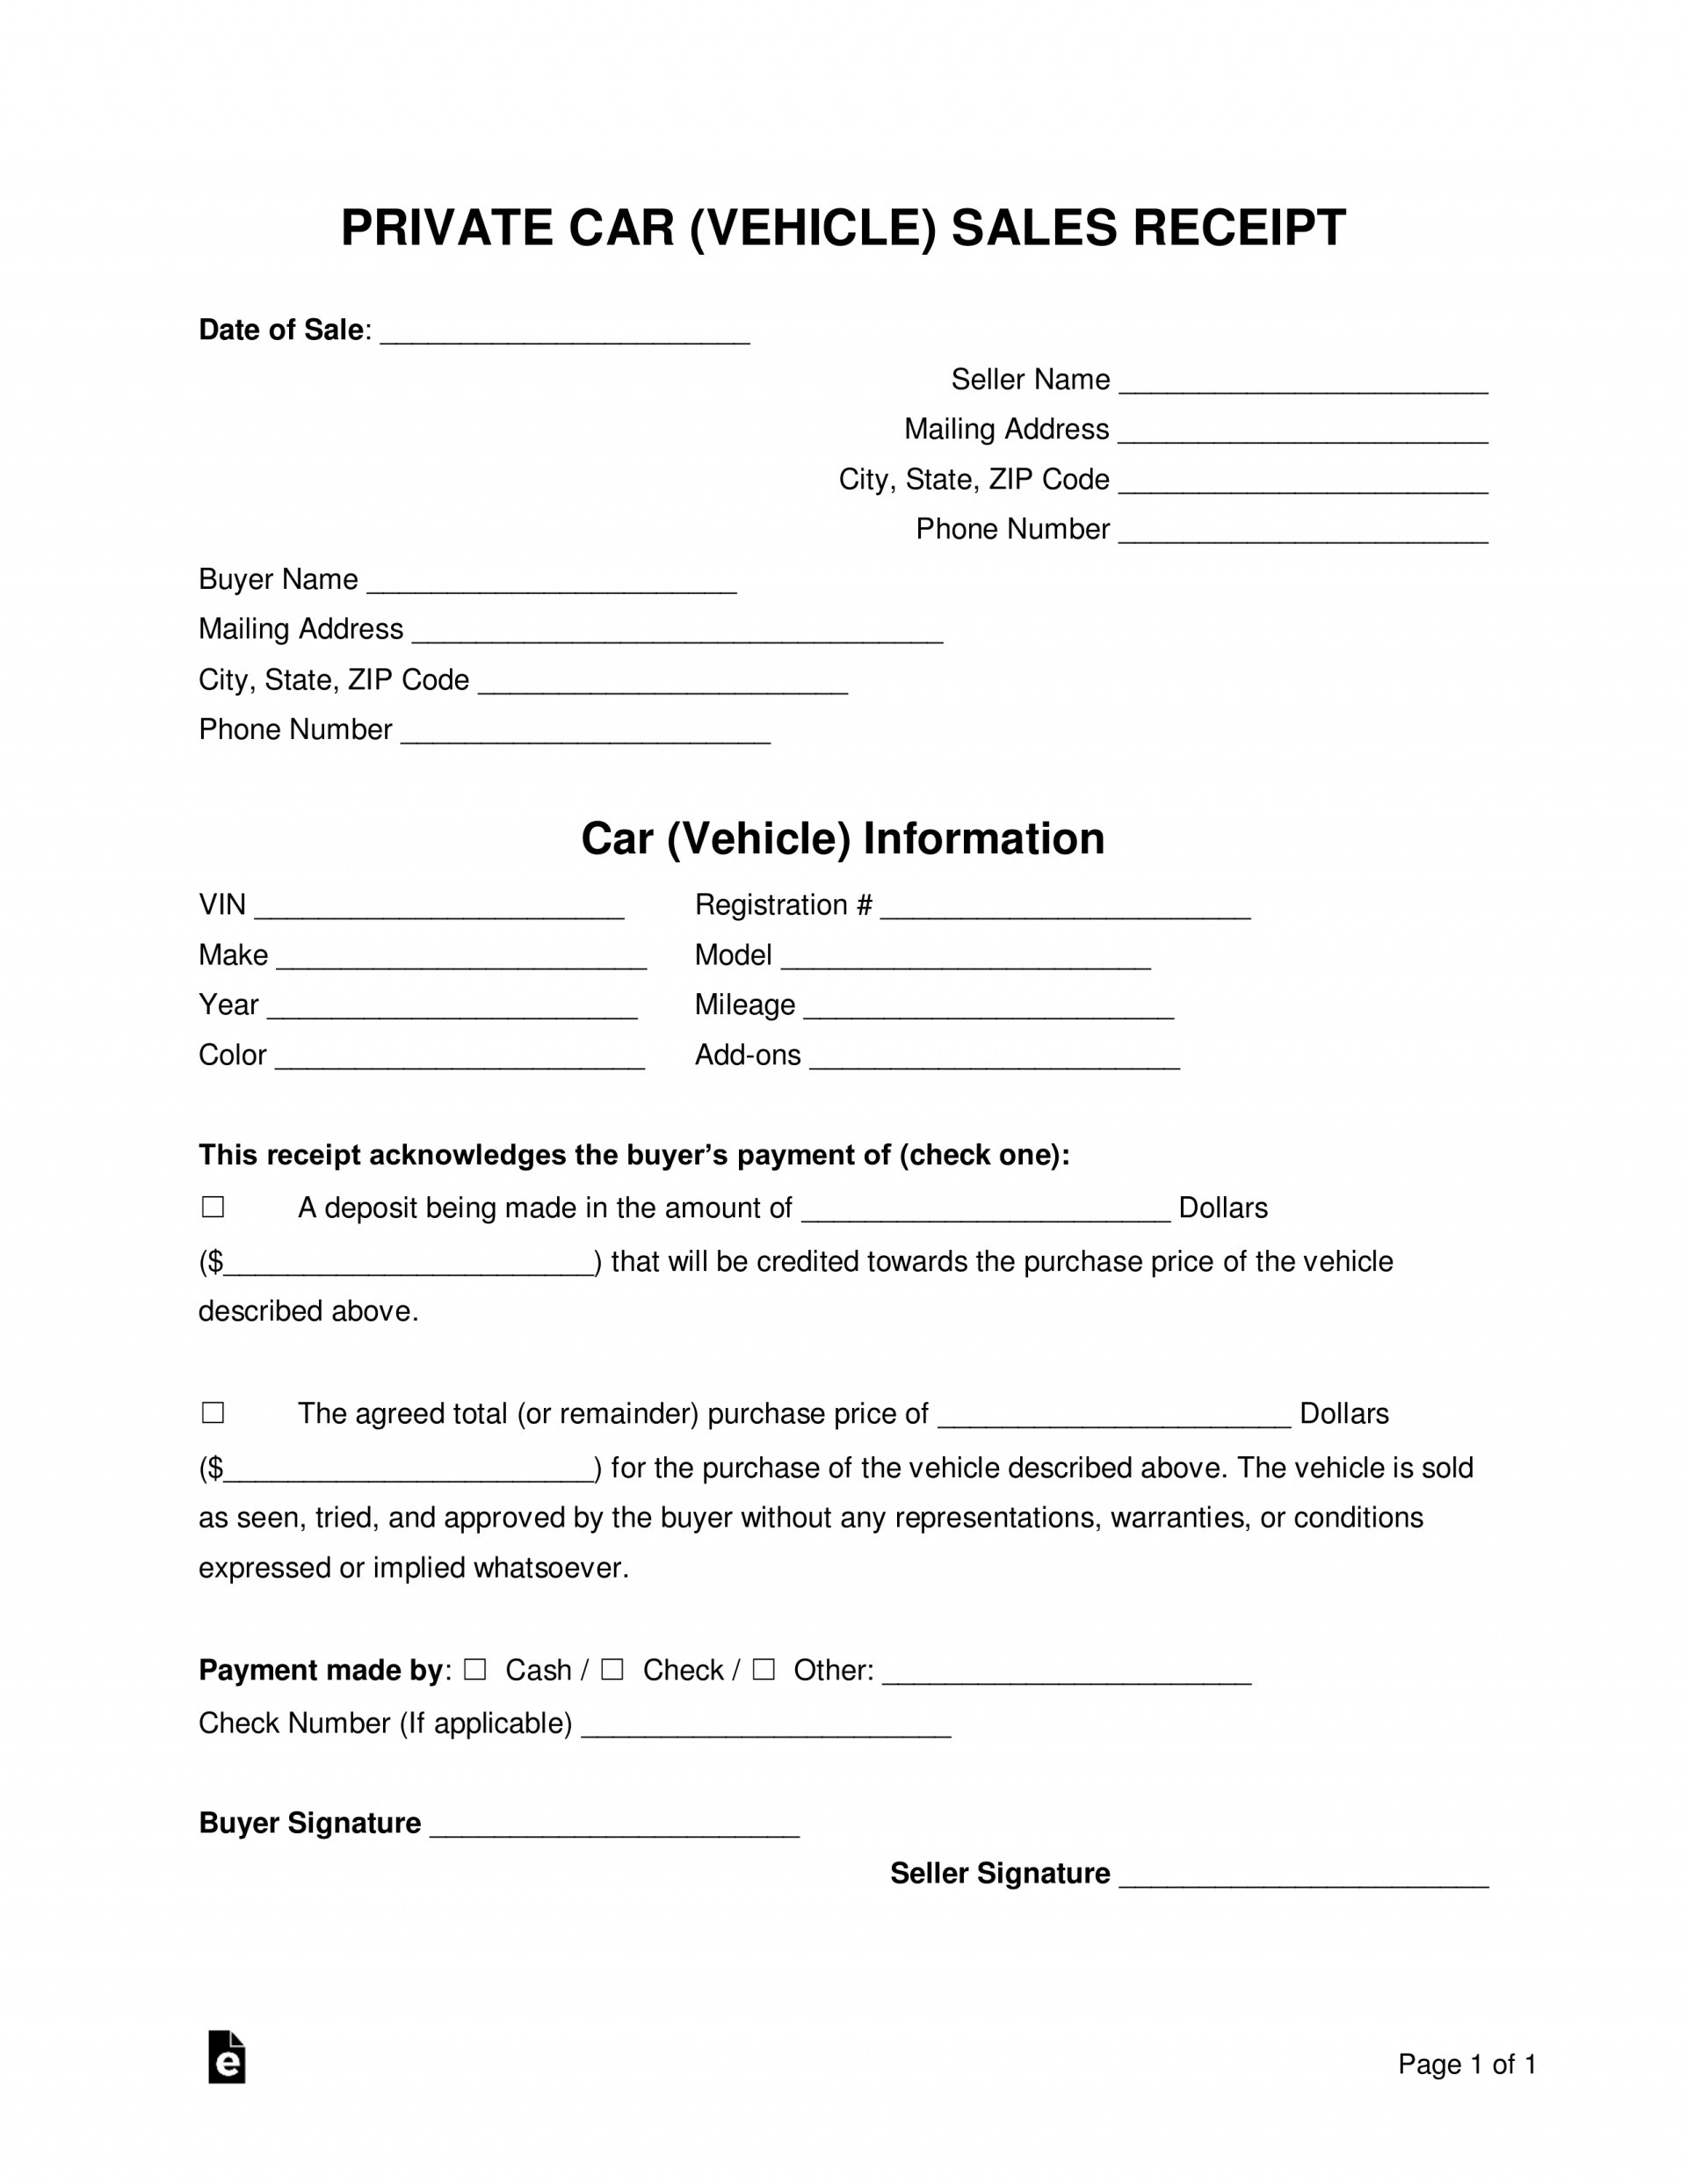 Car Sale Receipt Template Australia Pdf